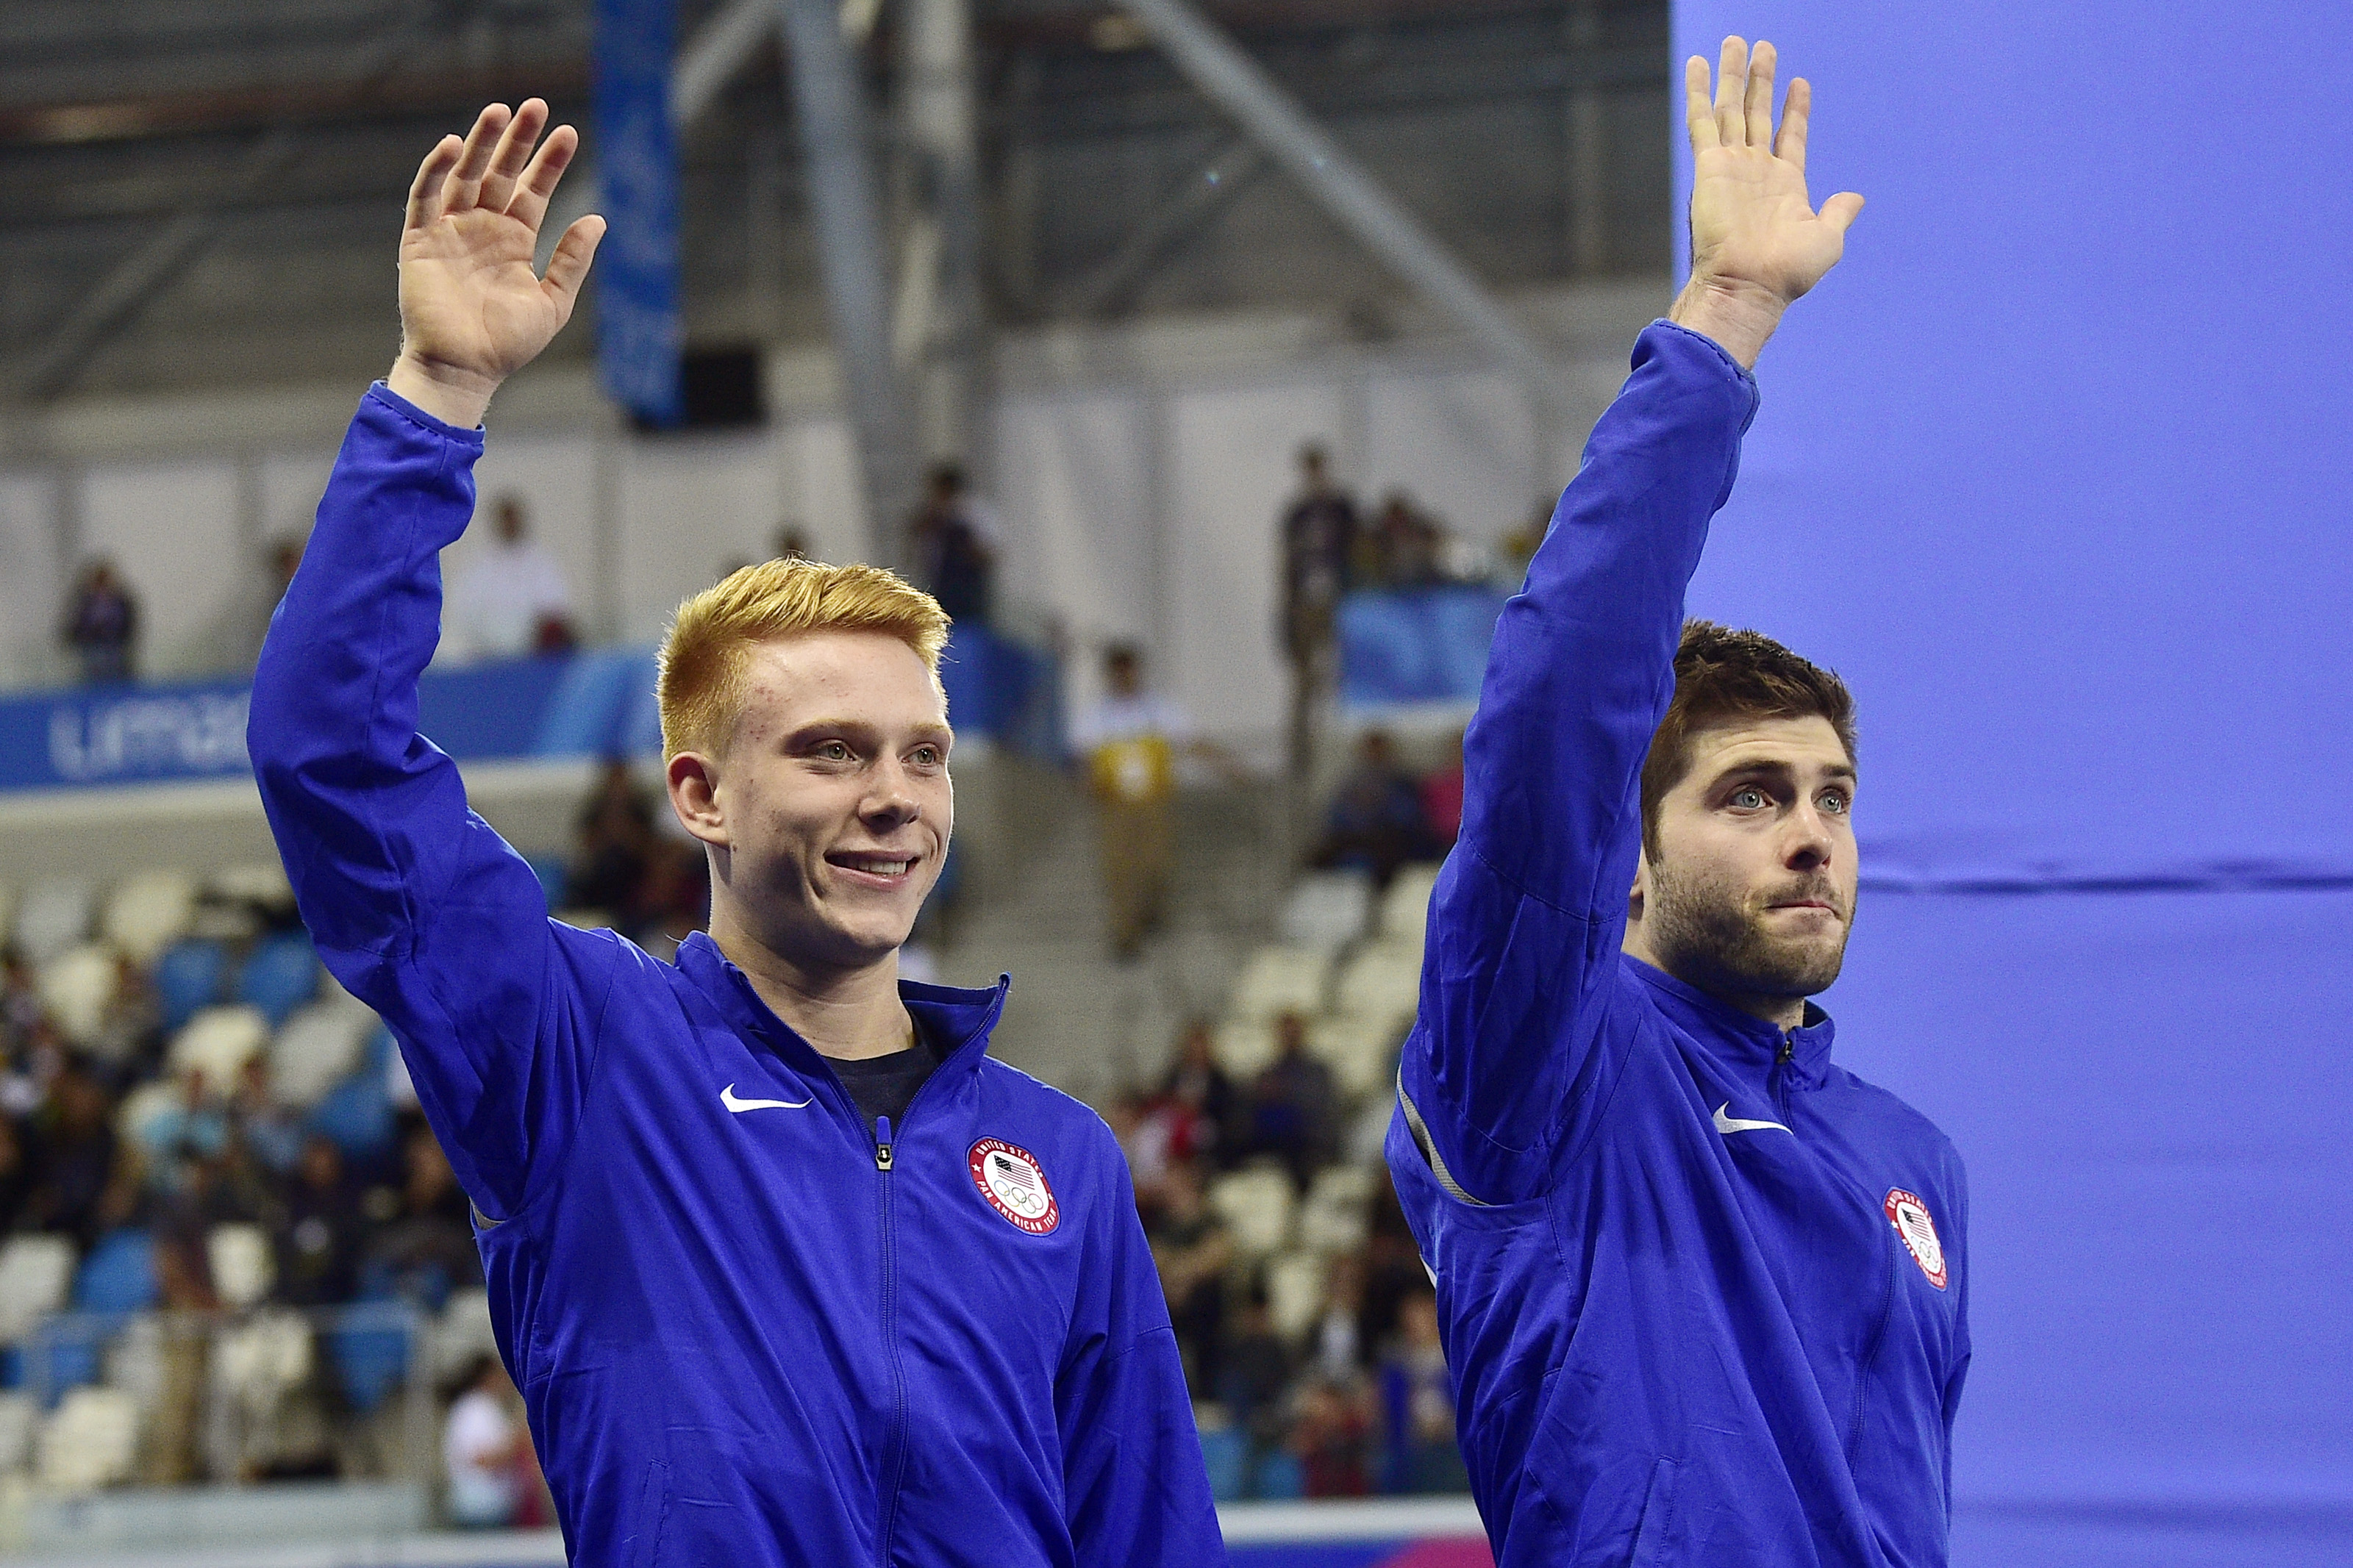 Lima 2019 Pan Am Games - Day 8